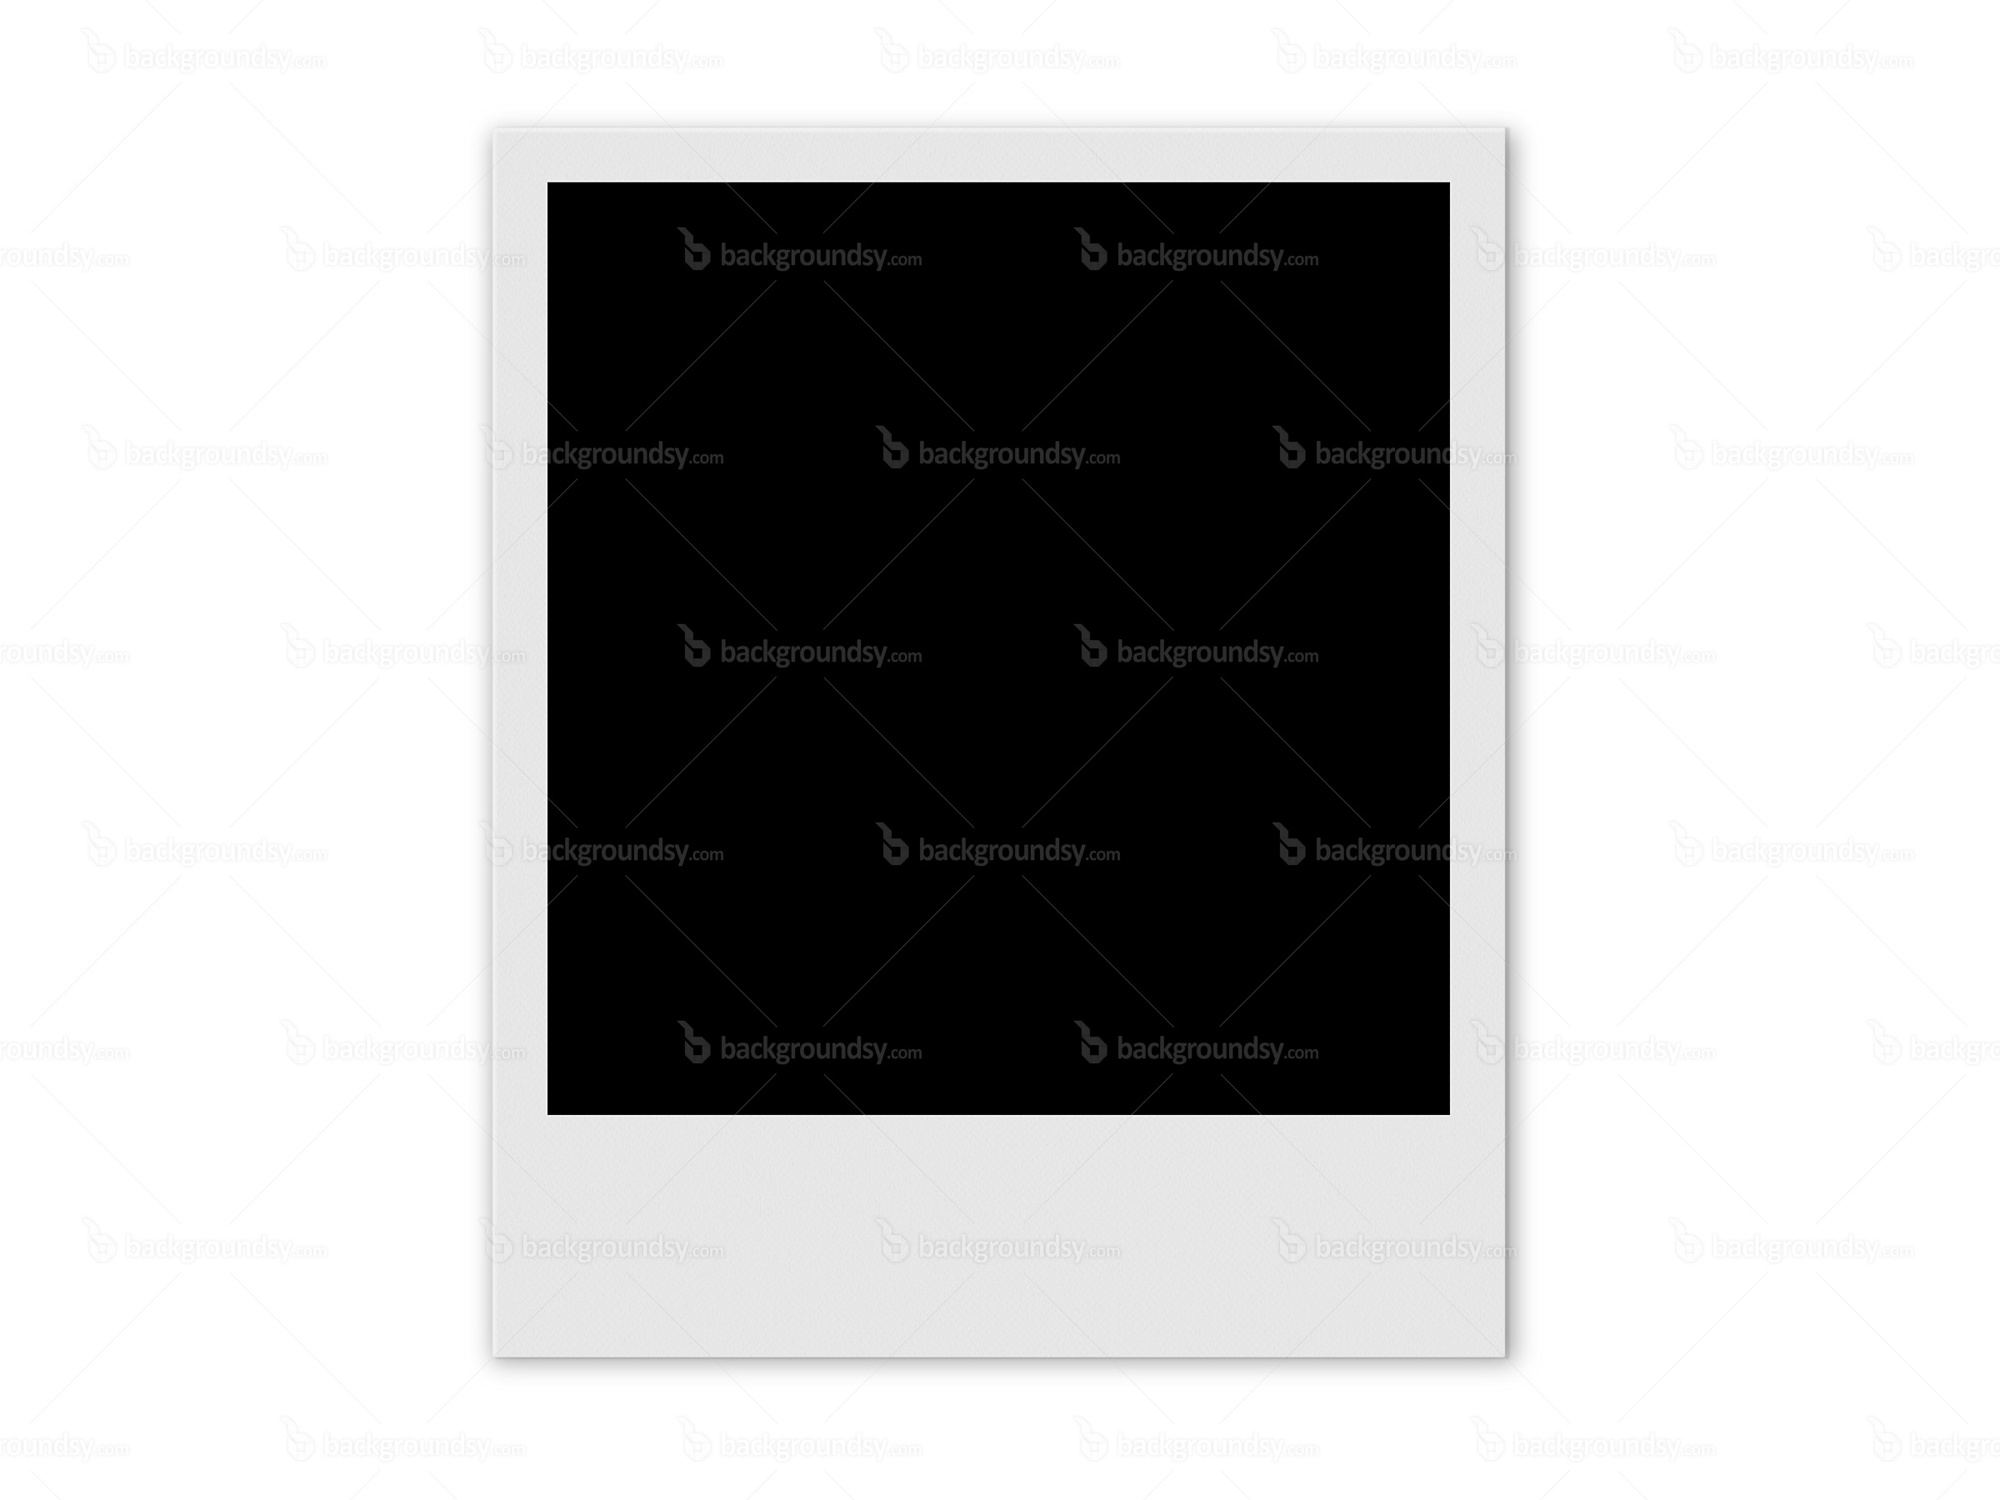 Polaroid frame | Backgroundsy.com